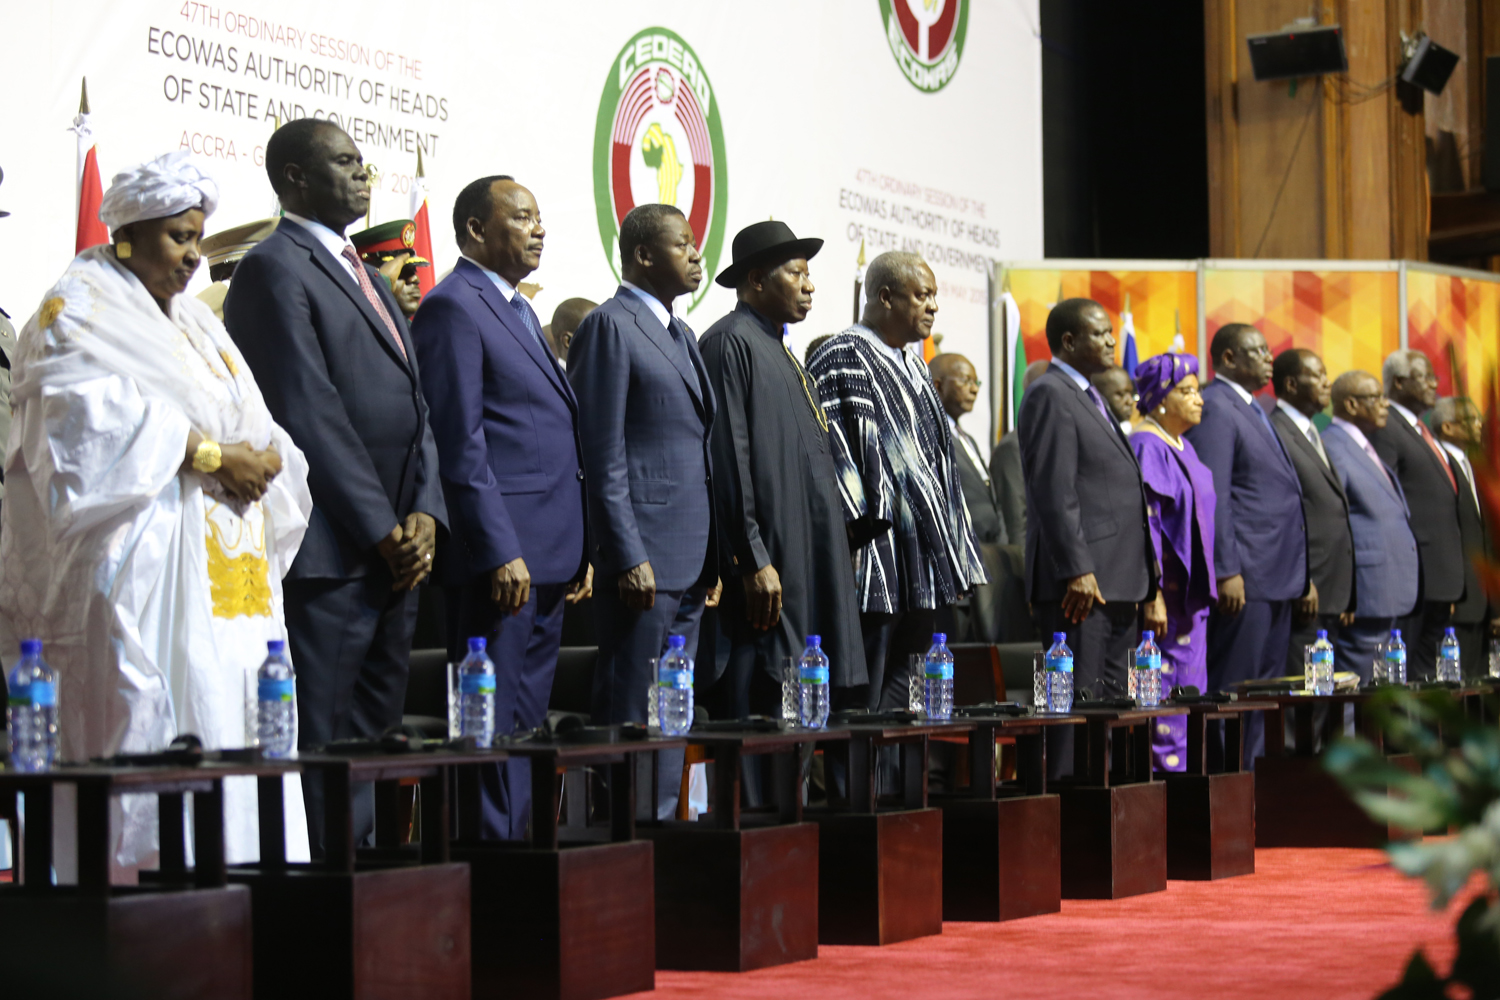 GROUP PICTURE OF THE ECOWAS HEADS OF STATE AT THE 47TH, ORDINARY SESSION OF THE ECOWAS AUTHORITY OF HEADS OF STATE AND GOVERNMENT IN ACCRA GHANA